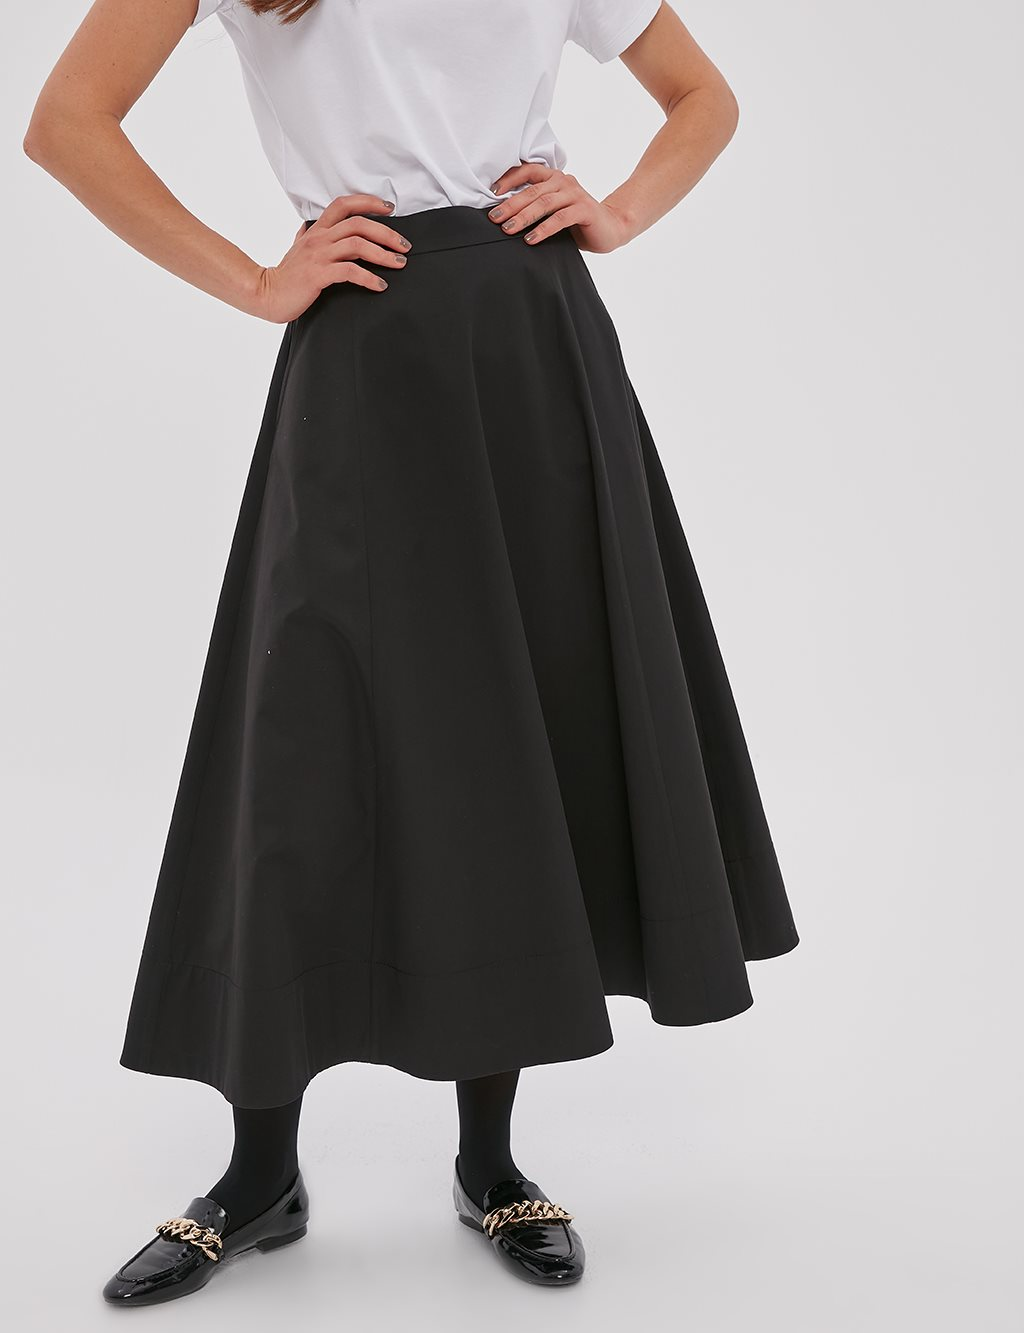 Flowy Skirt A20 12048 Black